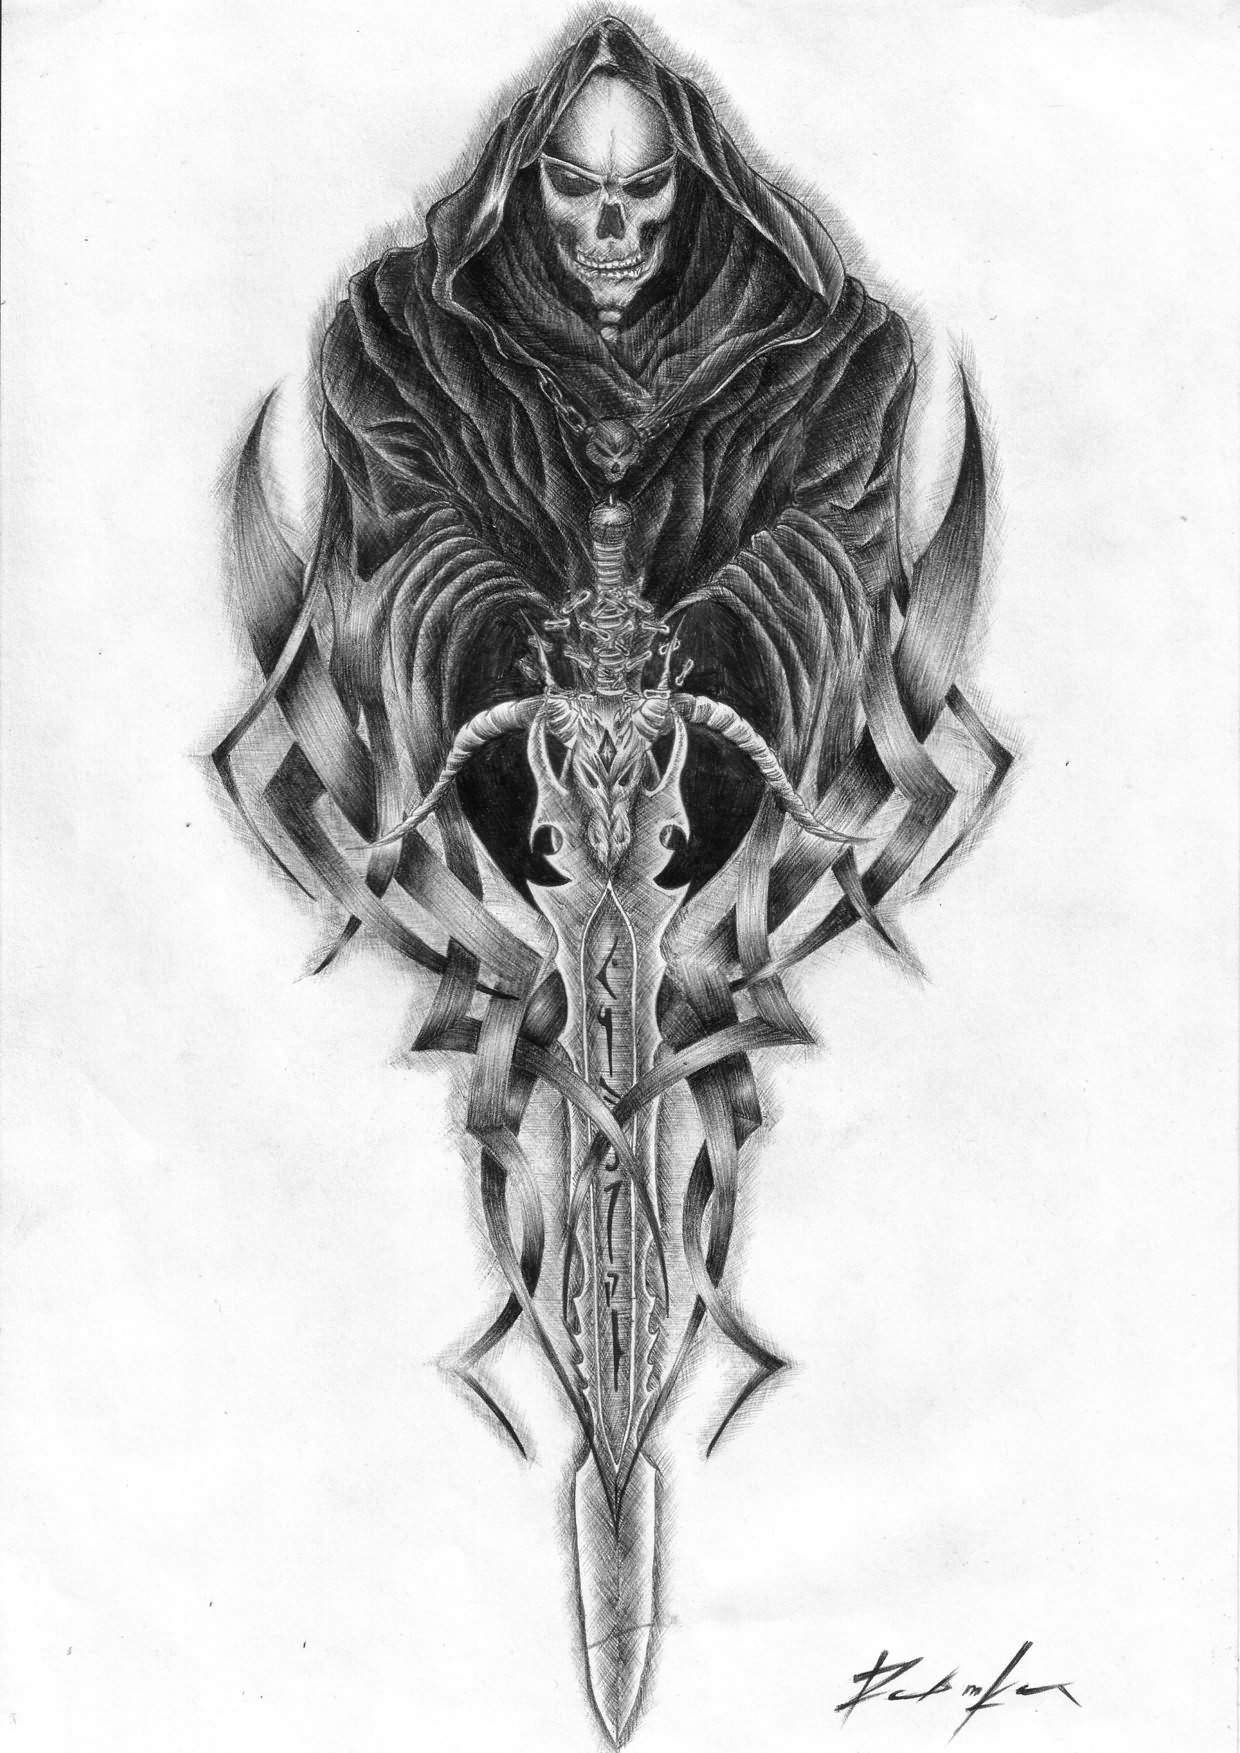 the gallery for grim reaper tattoo sketches. Black Bedroom Furniture Sets. Home Design Ideas